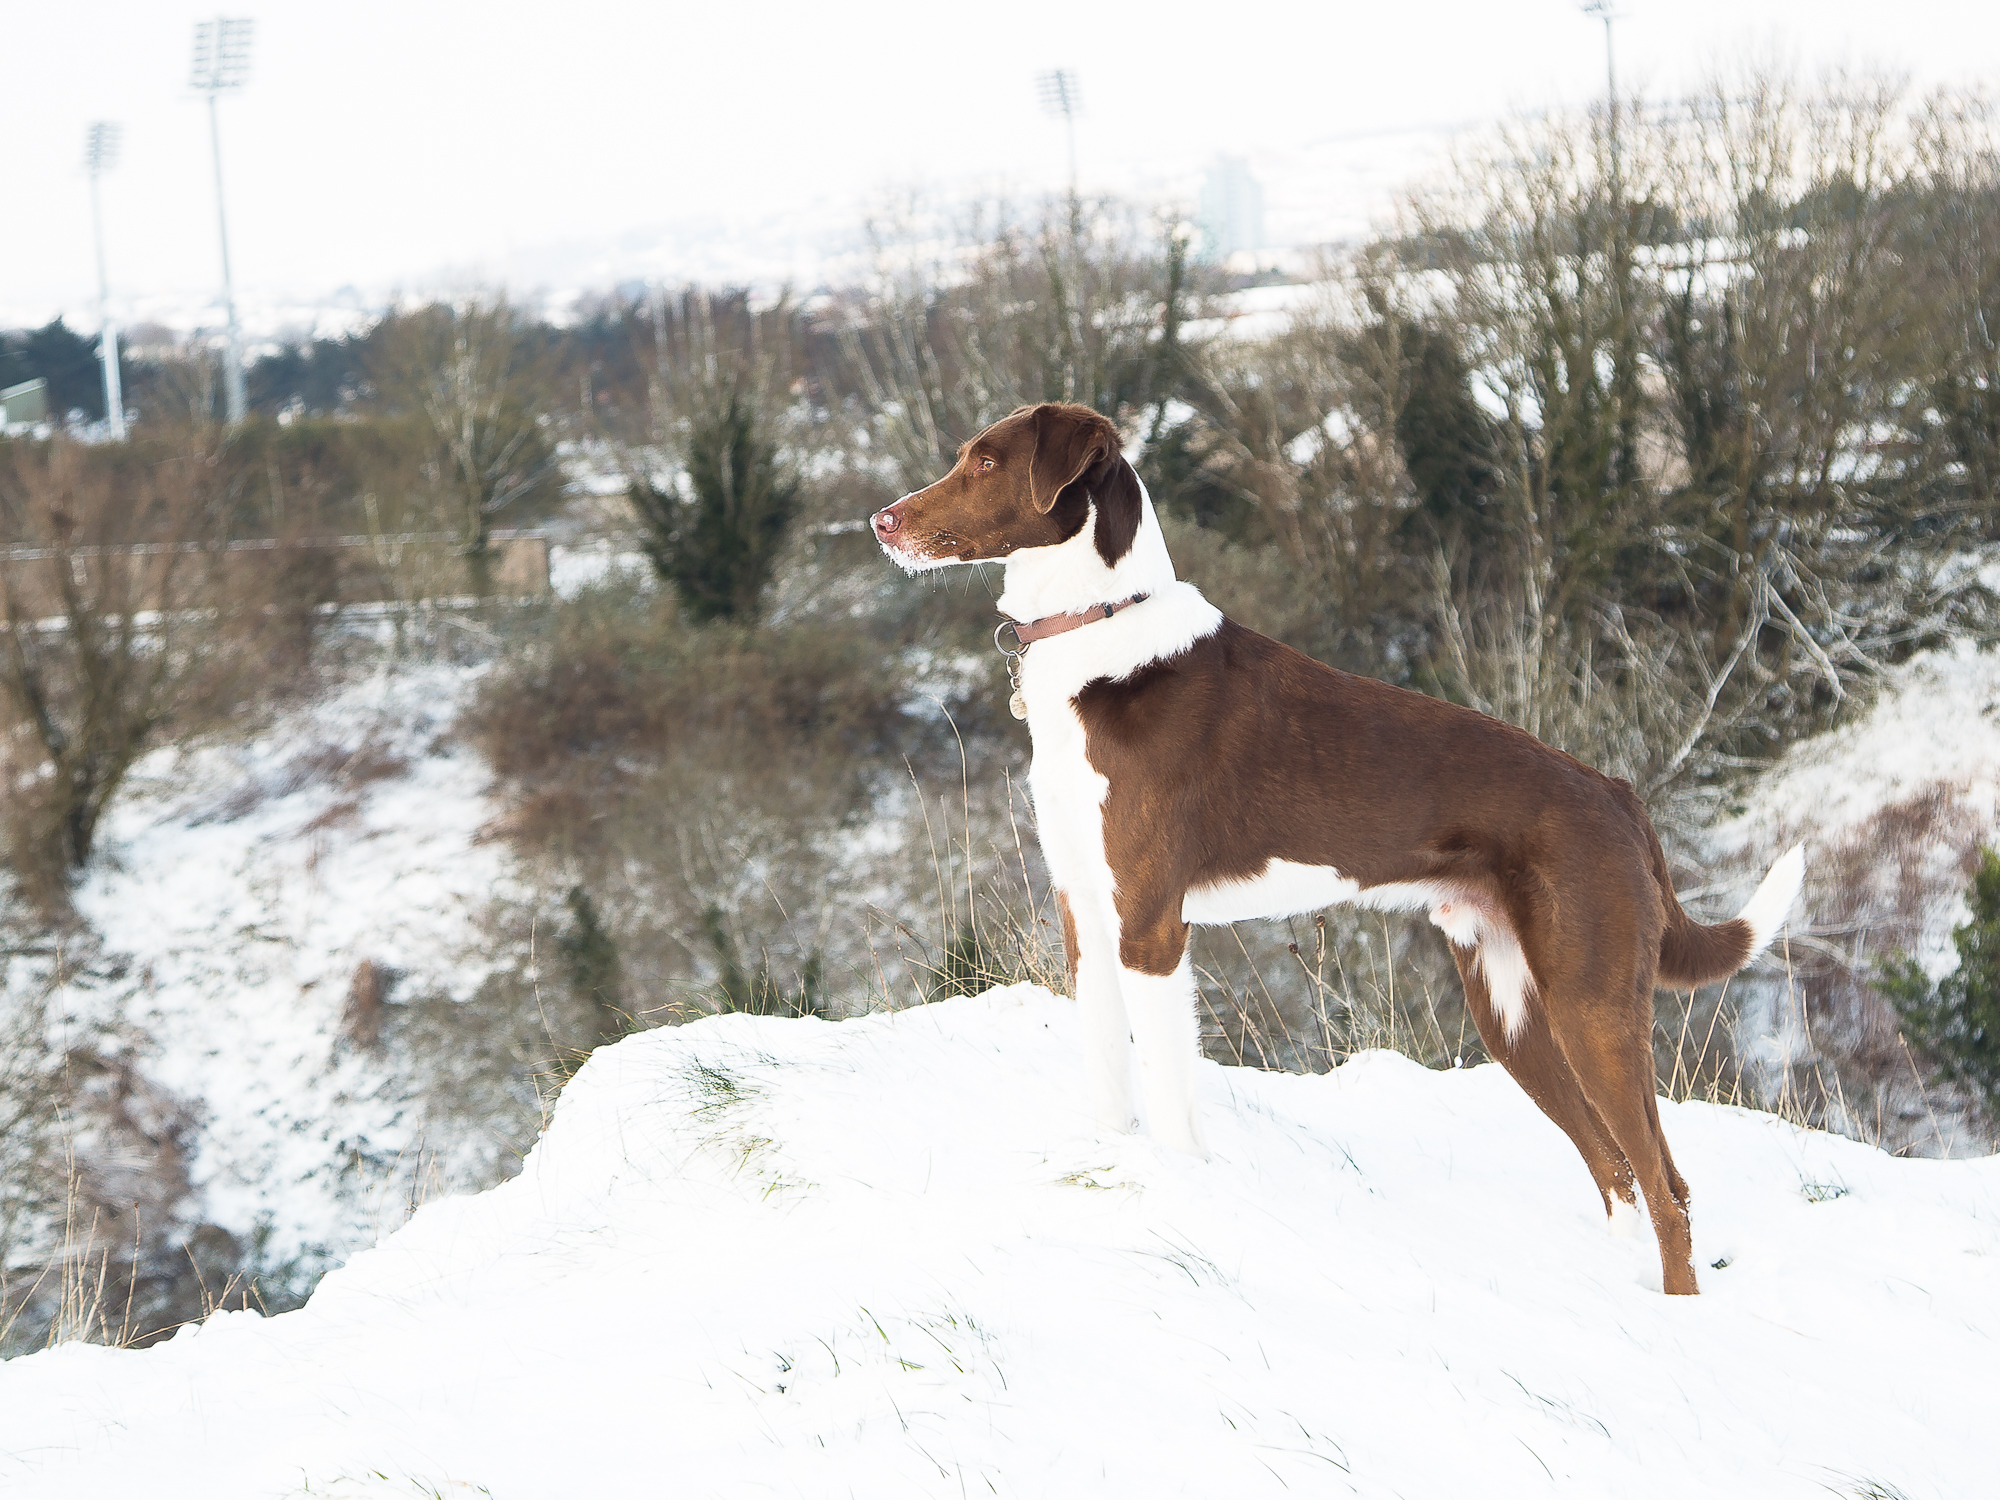 A hound keeps watch in the snow